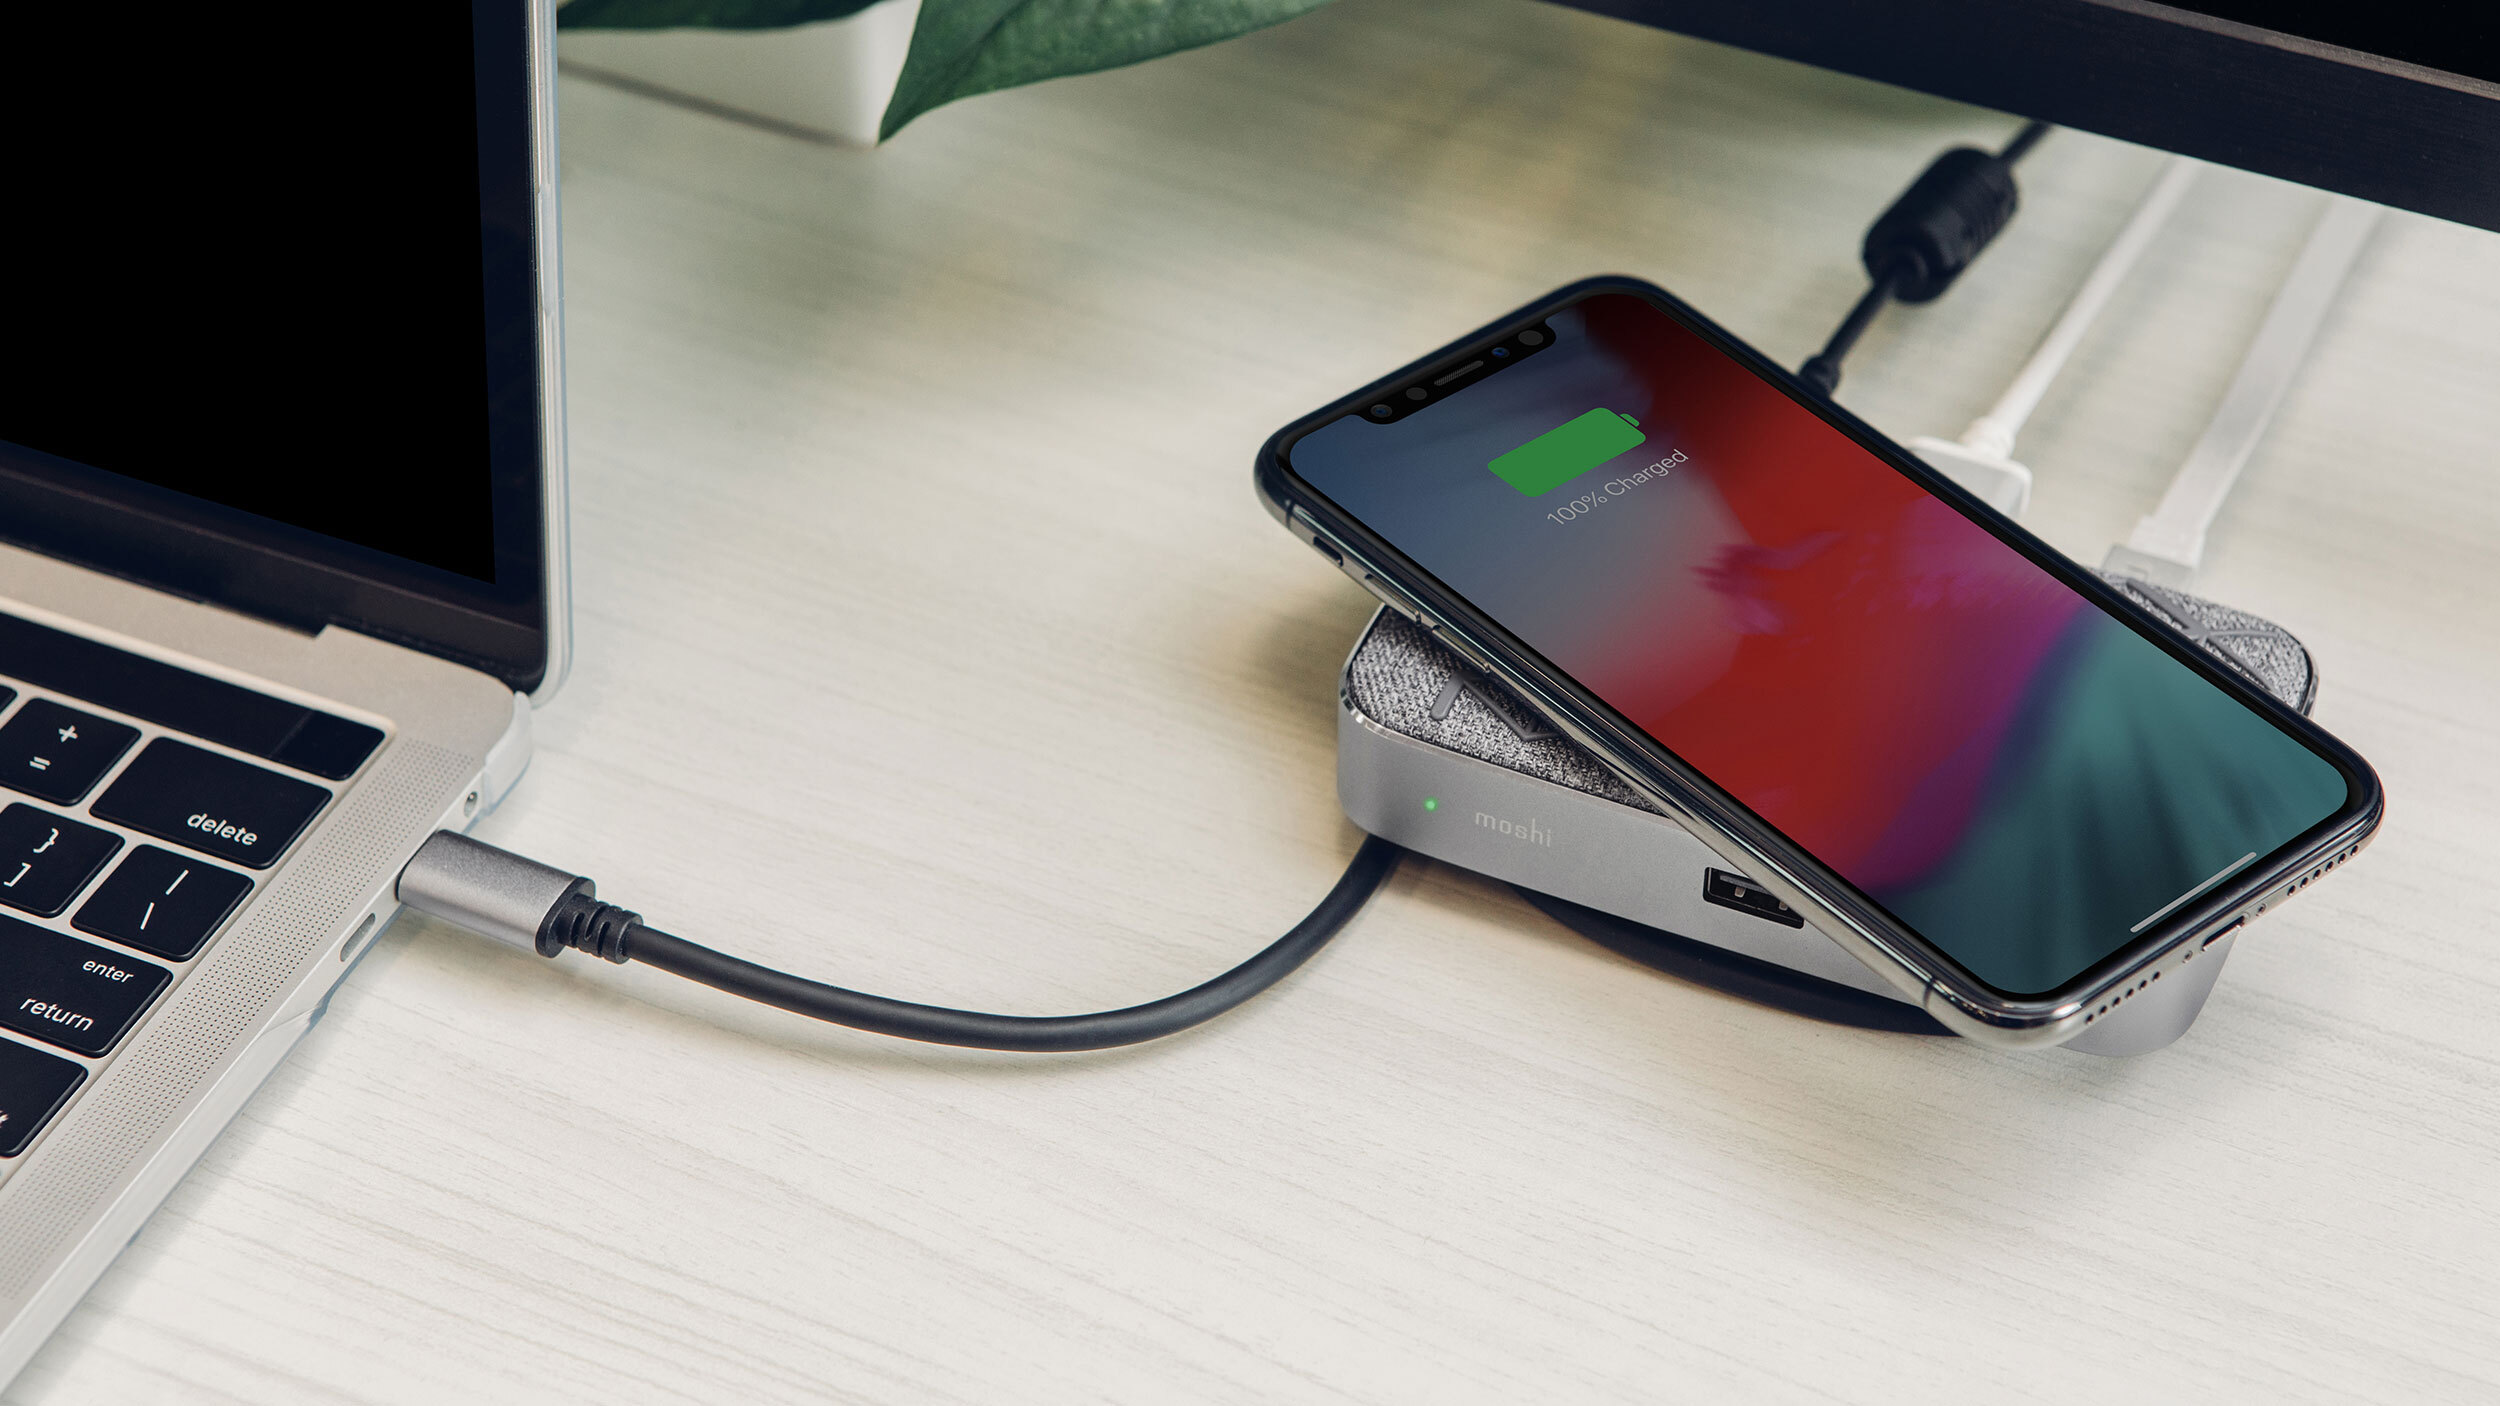 A smartphone charging on top of a Moshi Symbus Q hub which is connected to a laptop